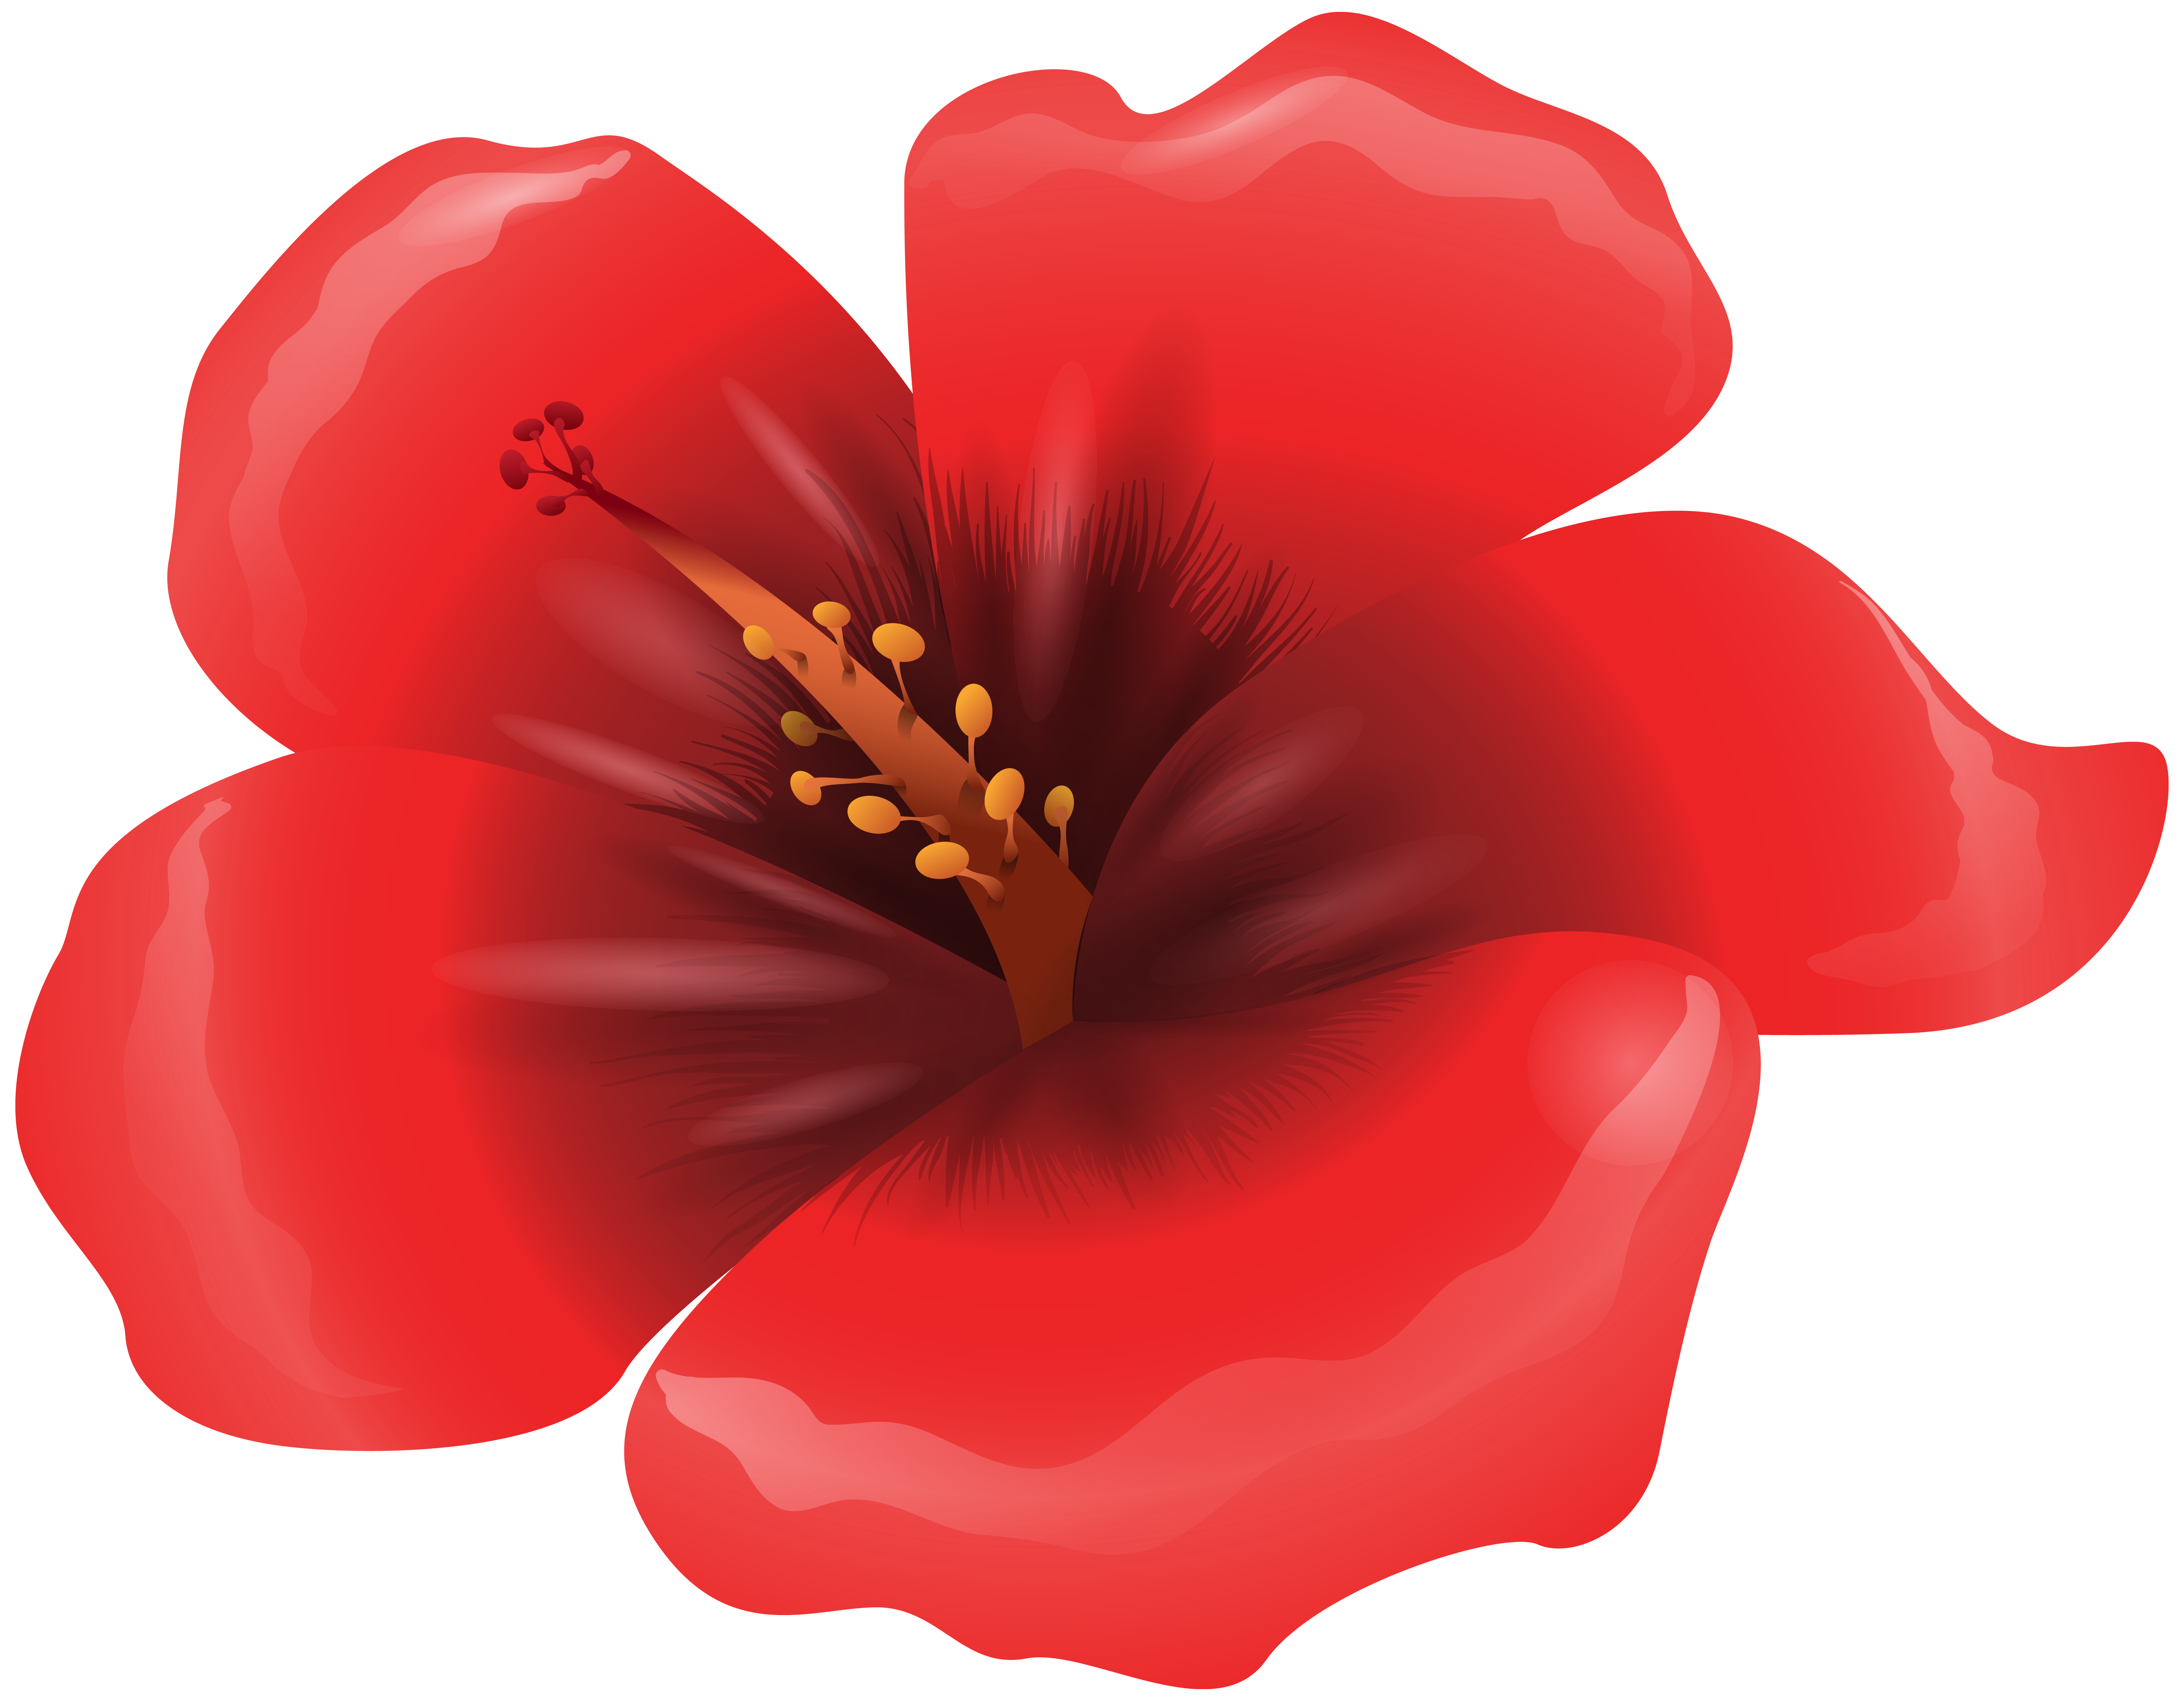 Flower clipart images png png black and white download Large Red Flower Clipart PNG Image png black and white download